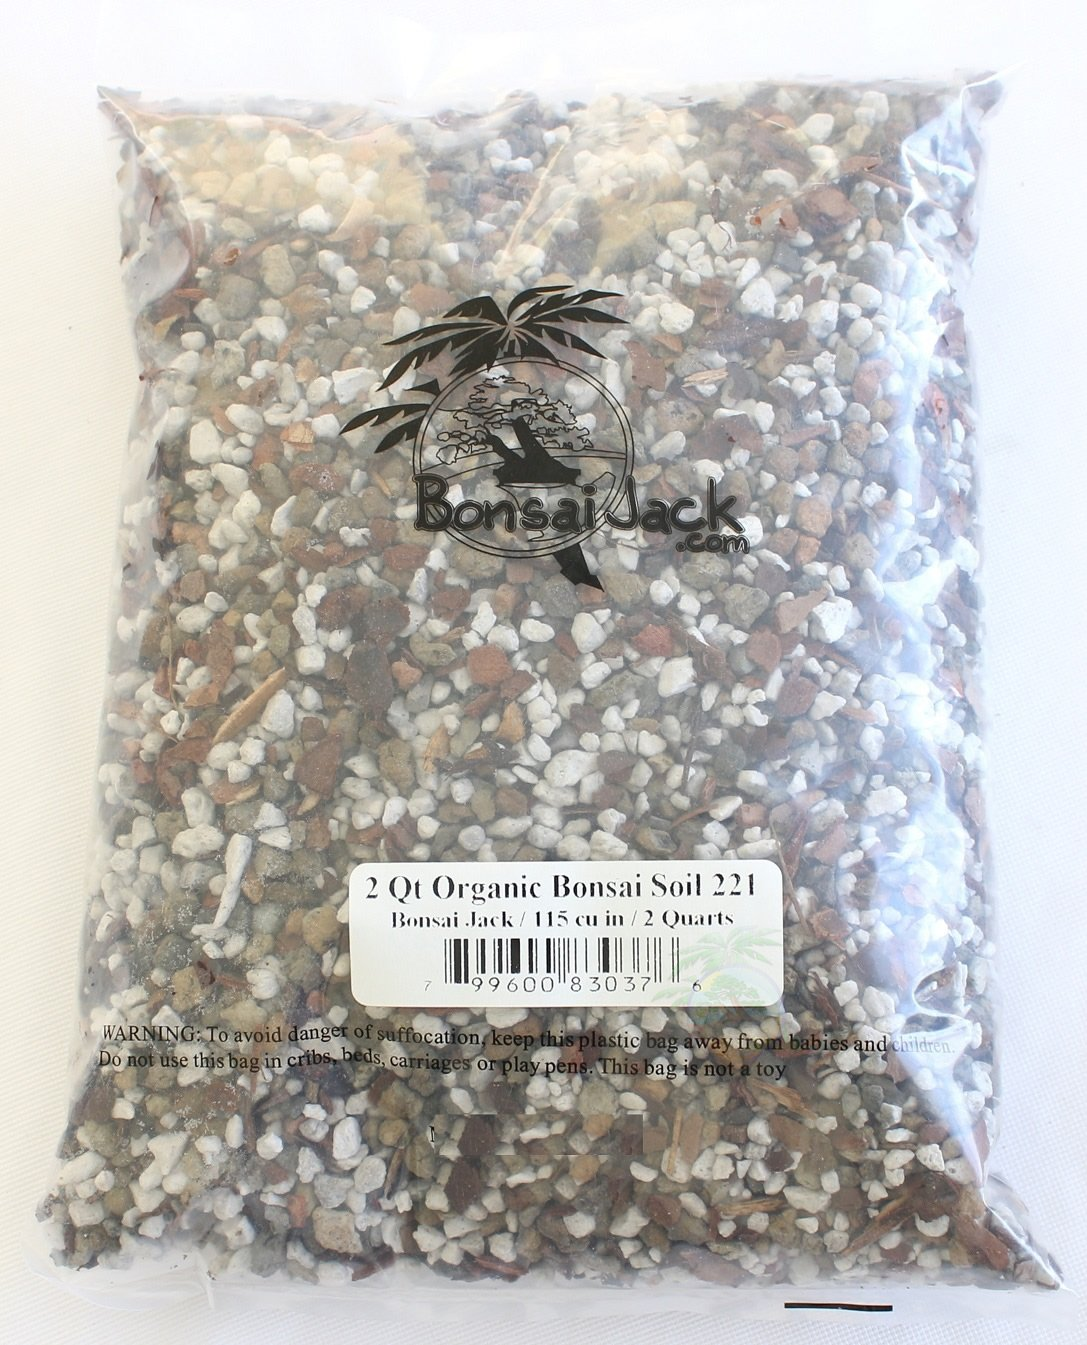 Bonsai Jack Universal Organic Bonsai Soil Mix #221 2 Quart